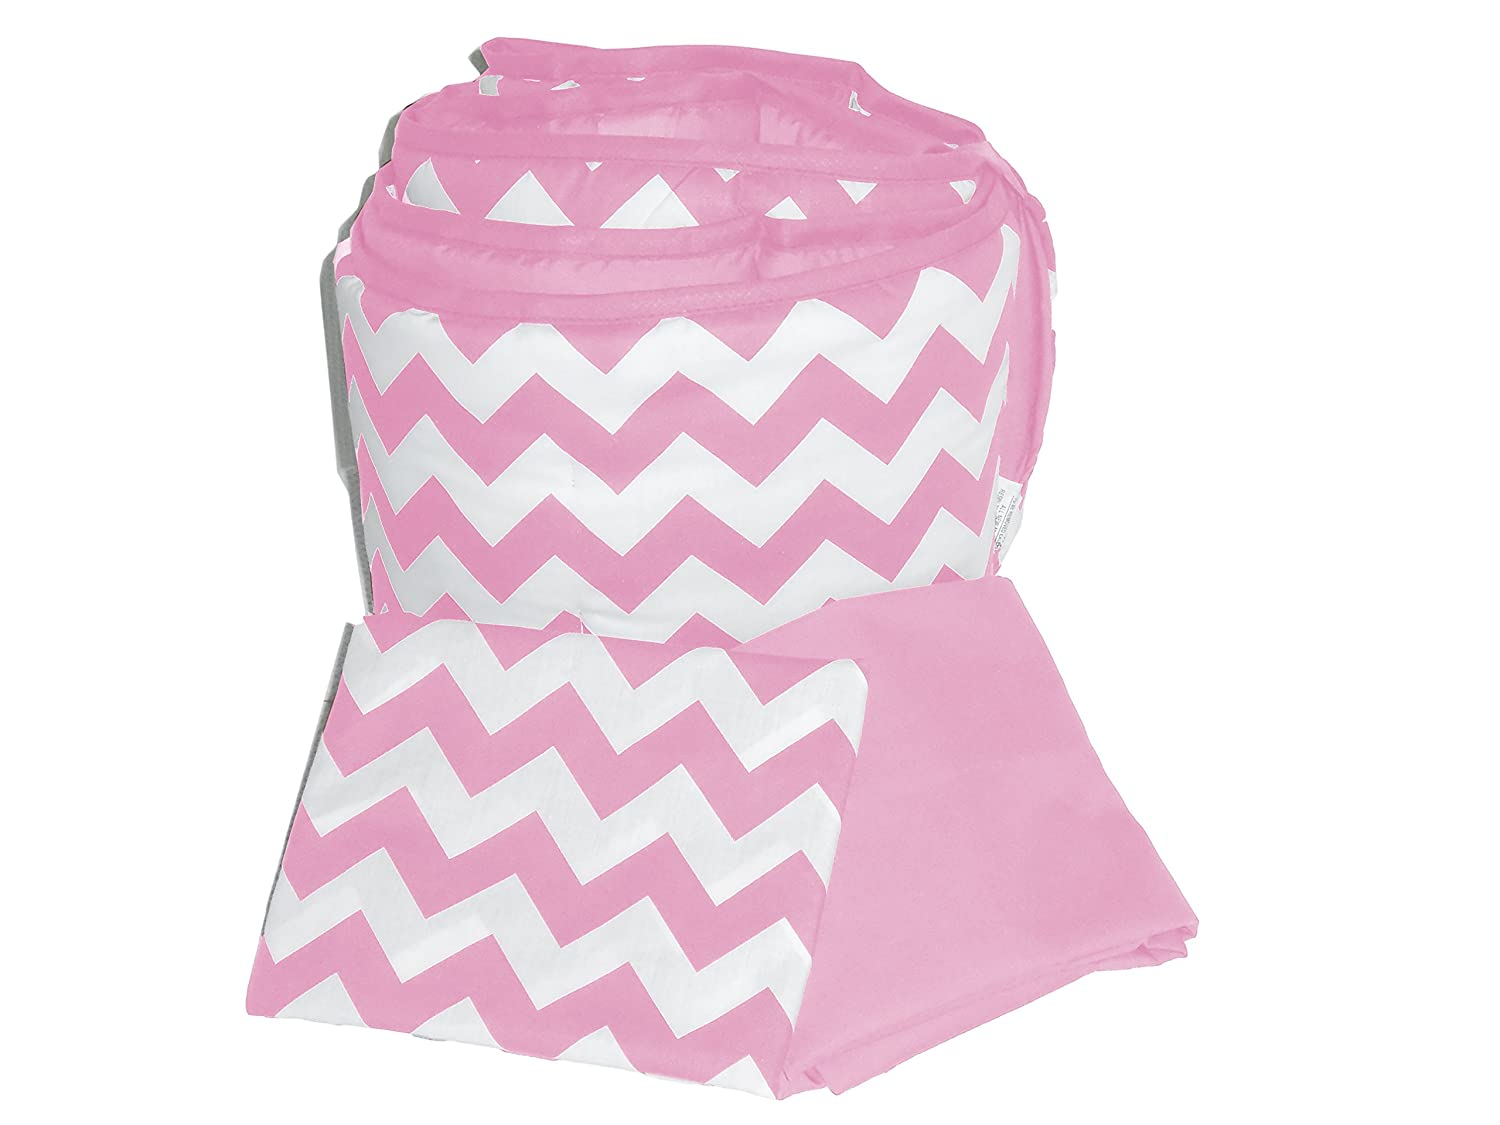 baby doll bedding Chevron Round Crib Bumper and Sheet Set, Pink 705rbse-pink